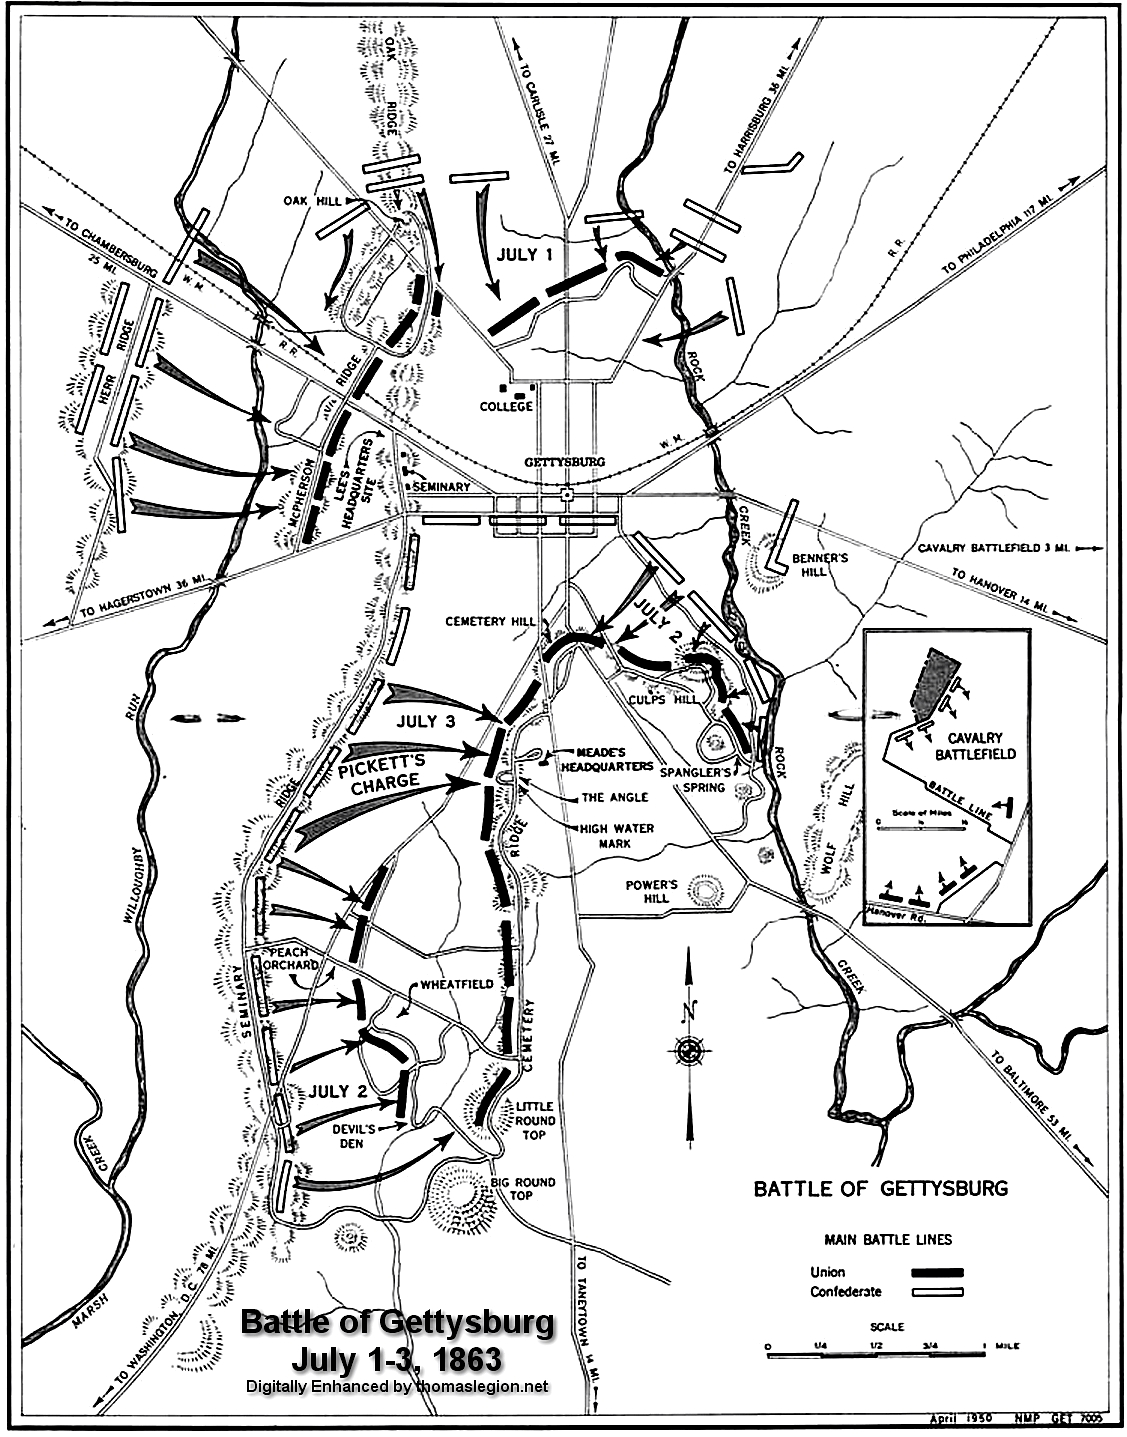 Civil War Battle of Gettysburg Map.jpg